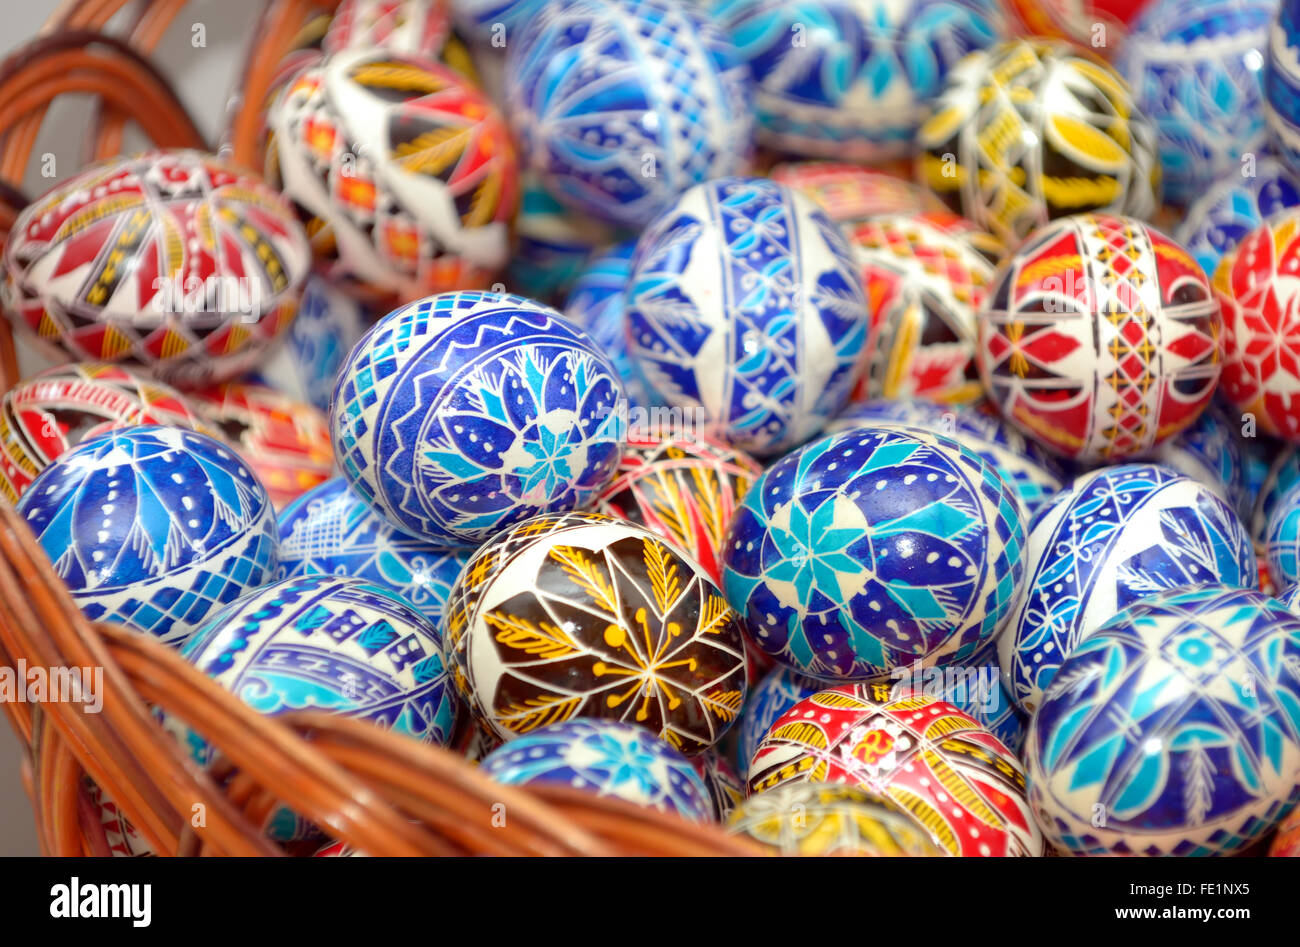 Traditional easter eggs hand painted - Stock Image